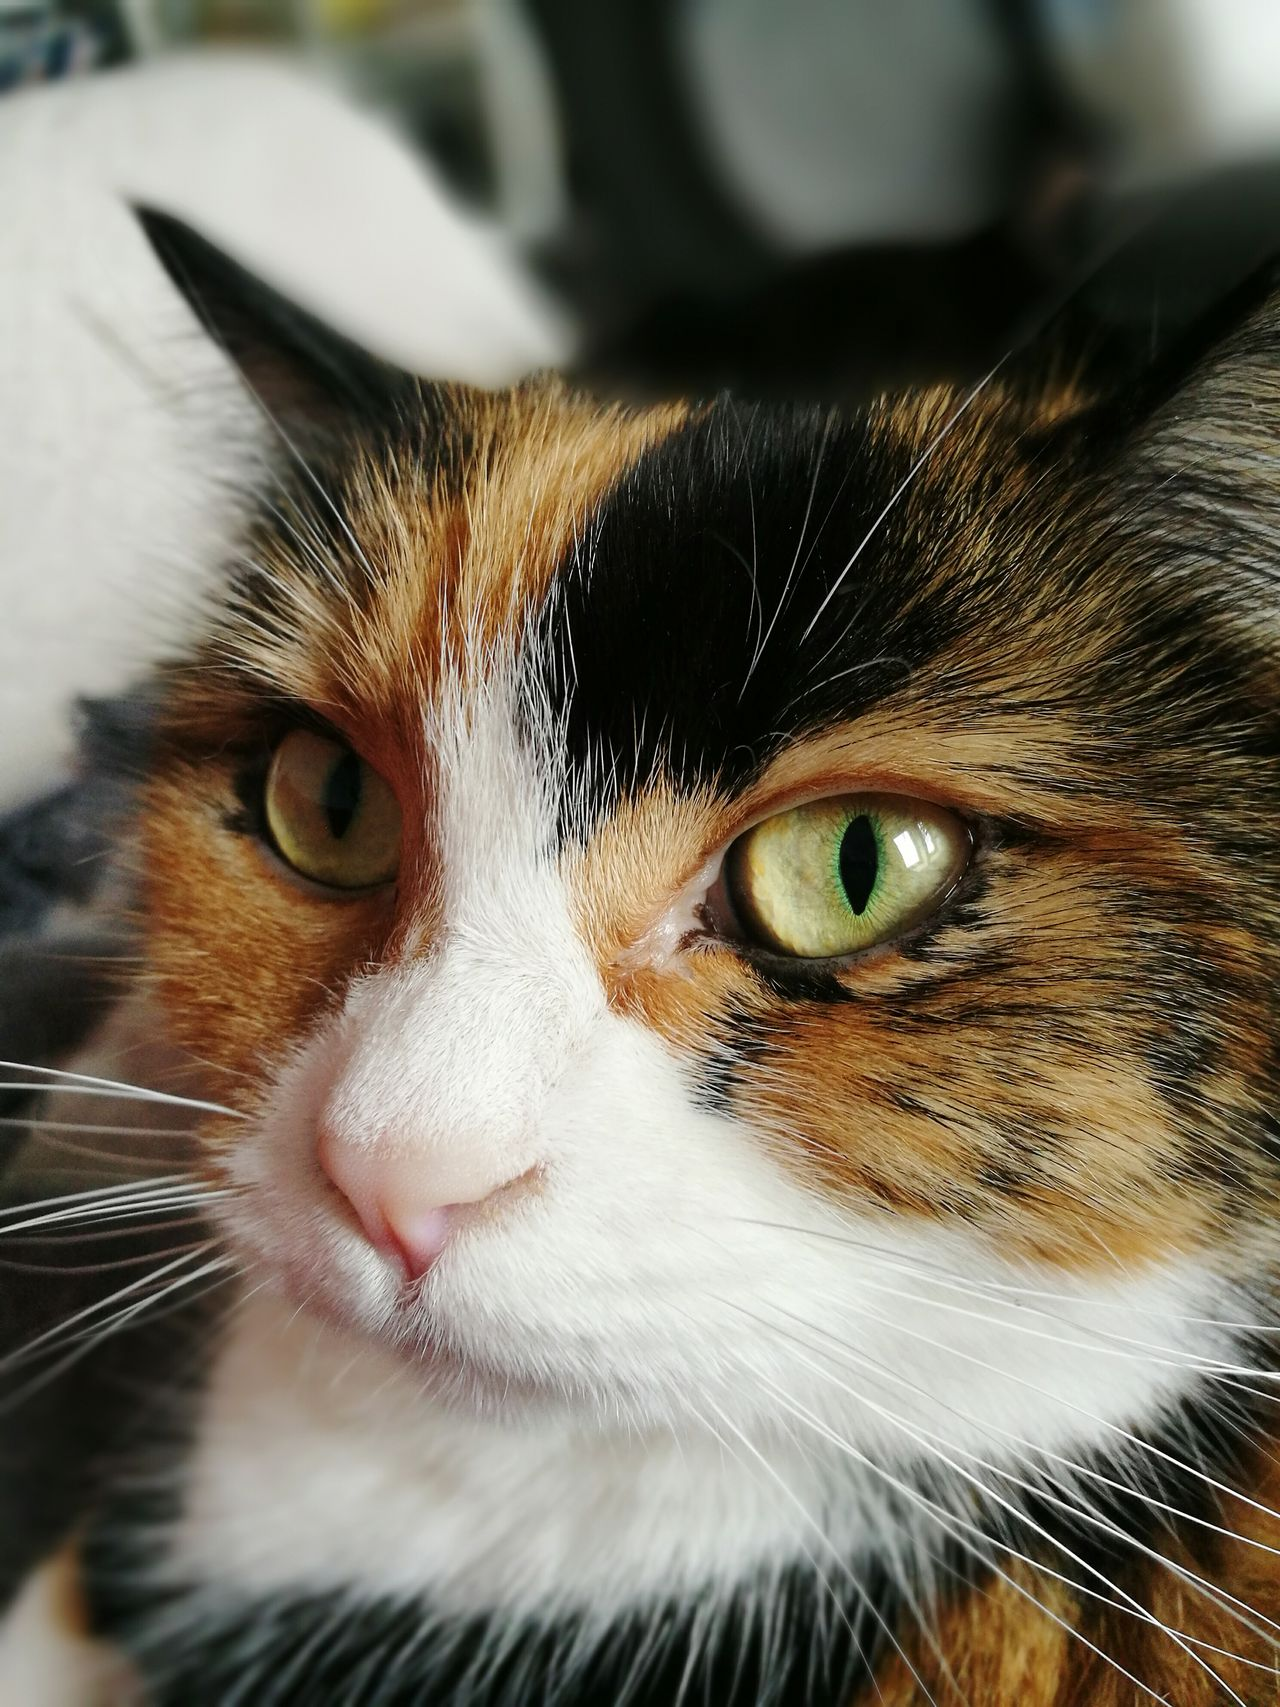 One Animal Animal Themes Domestic Cat Pets Domestic Animals Looking At Camera Feline Portrait Close-up No People No Filter, No Edit, Just Photography Indoors  Katzenliebe My Cat Cats Of EyeEm Cat Mycat♥ Looking At Camera My Cats Premium Collection